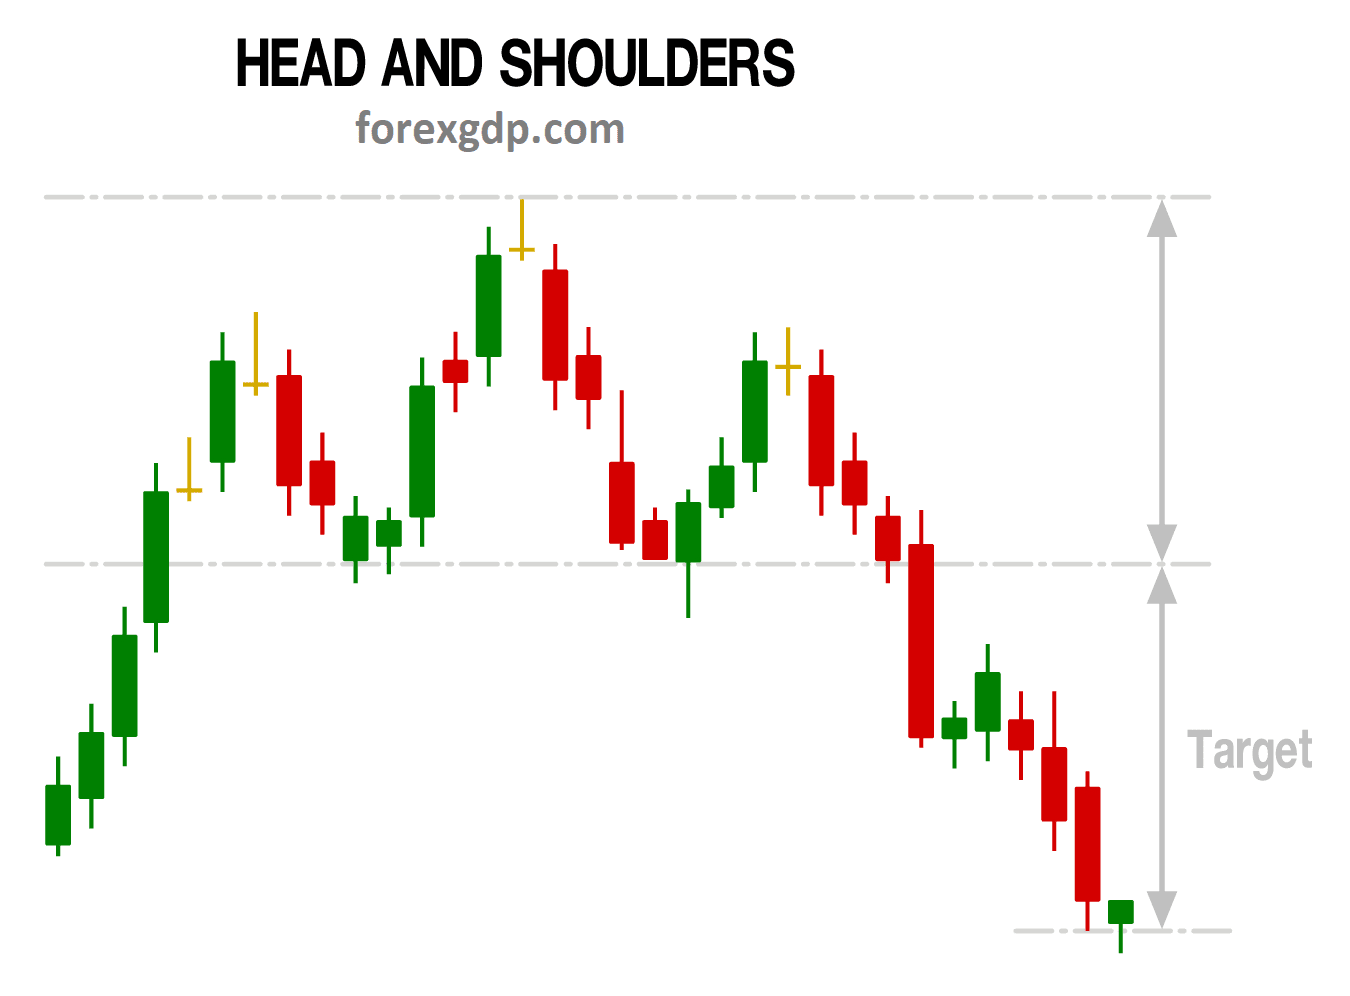 Head and Shoulders take profit target